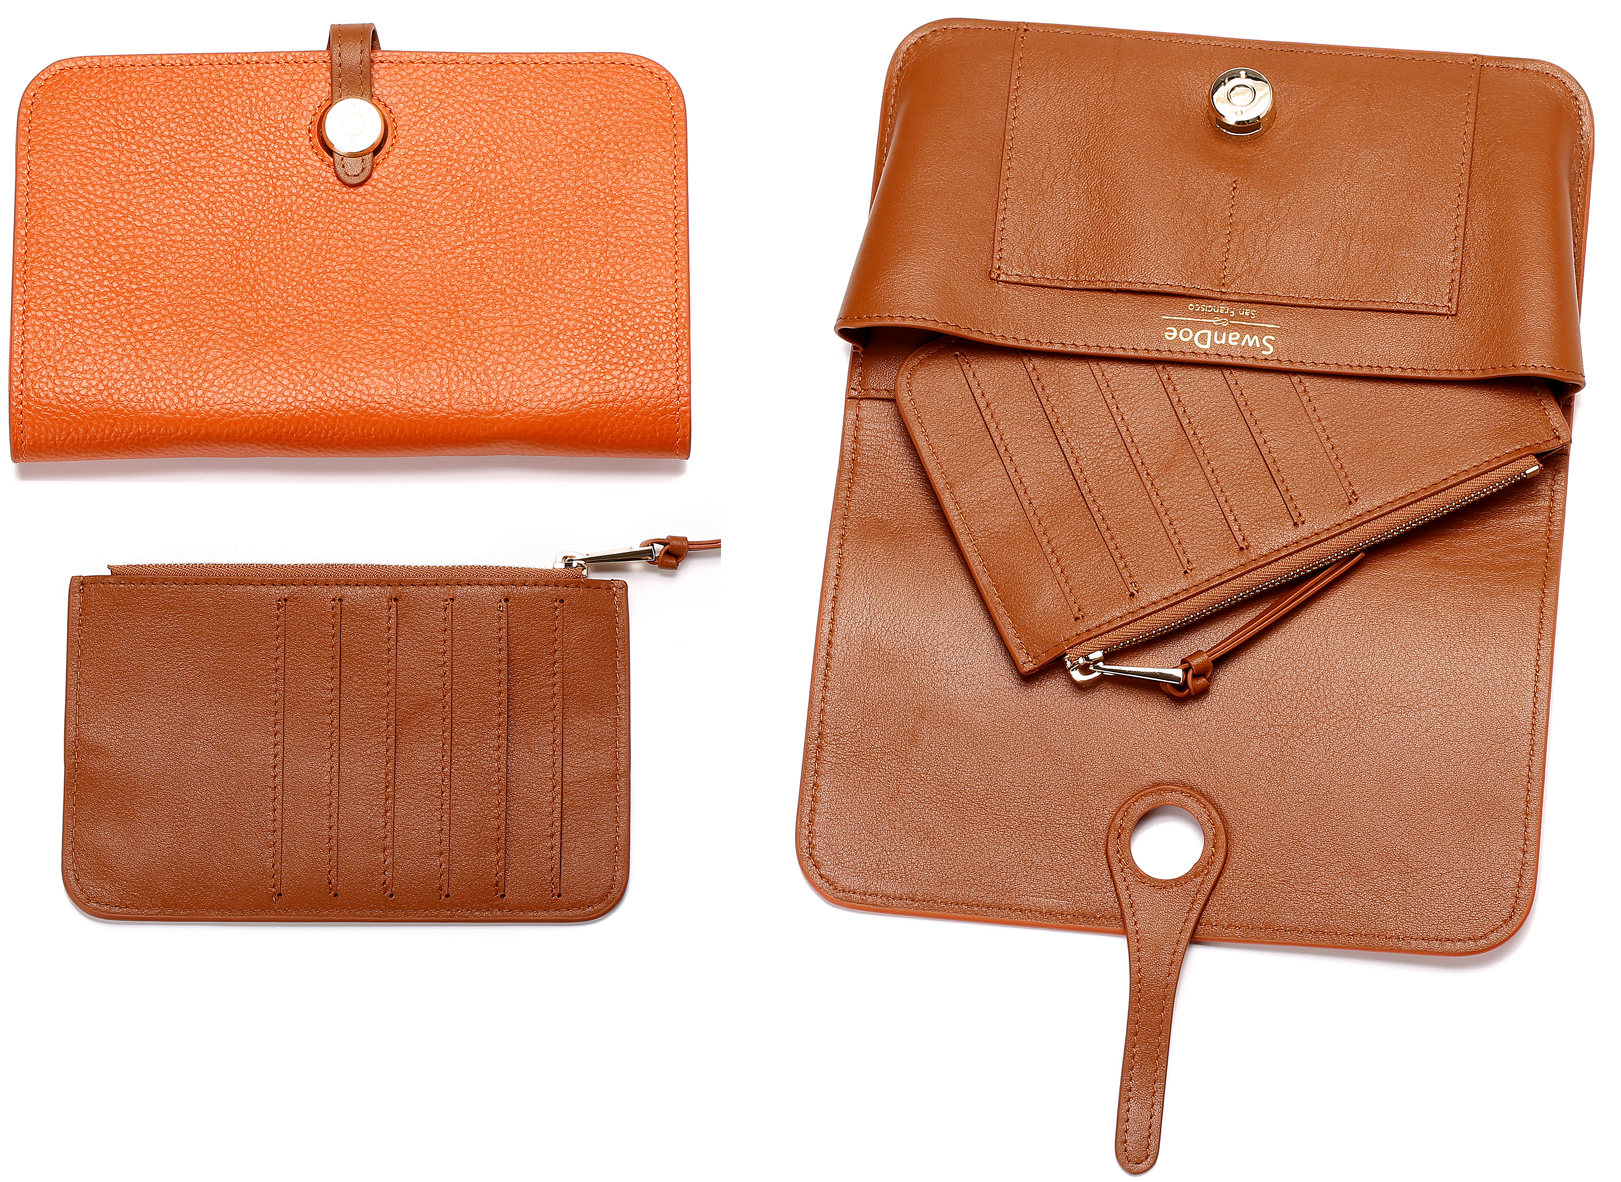 Convertible Wallet - Pumpkin Pie